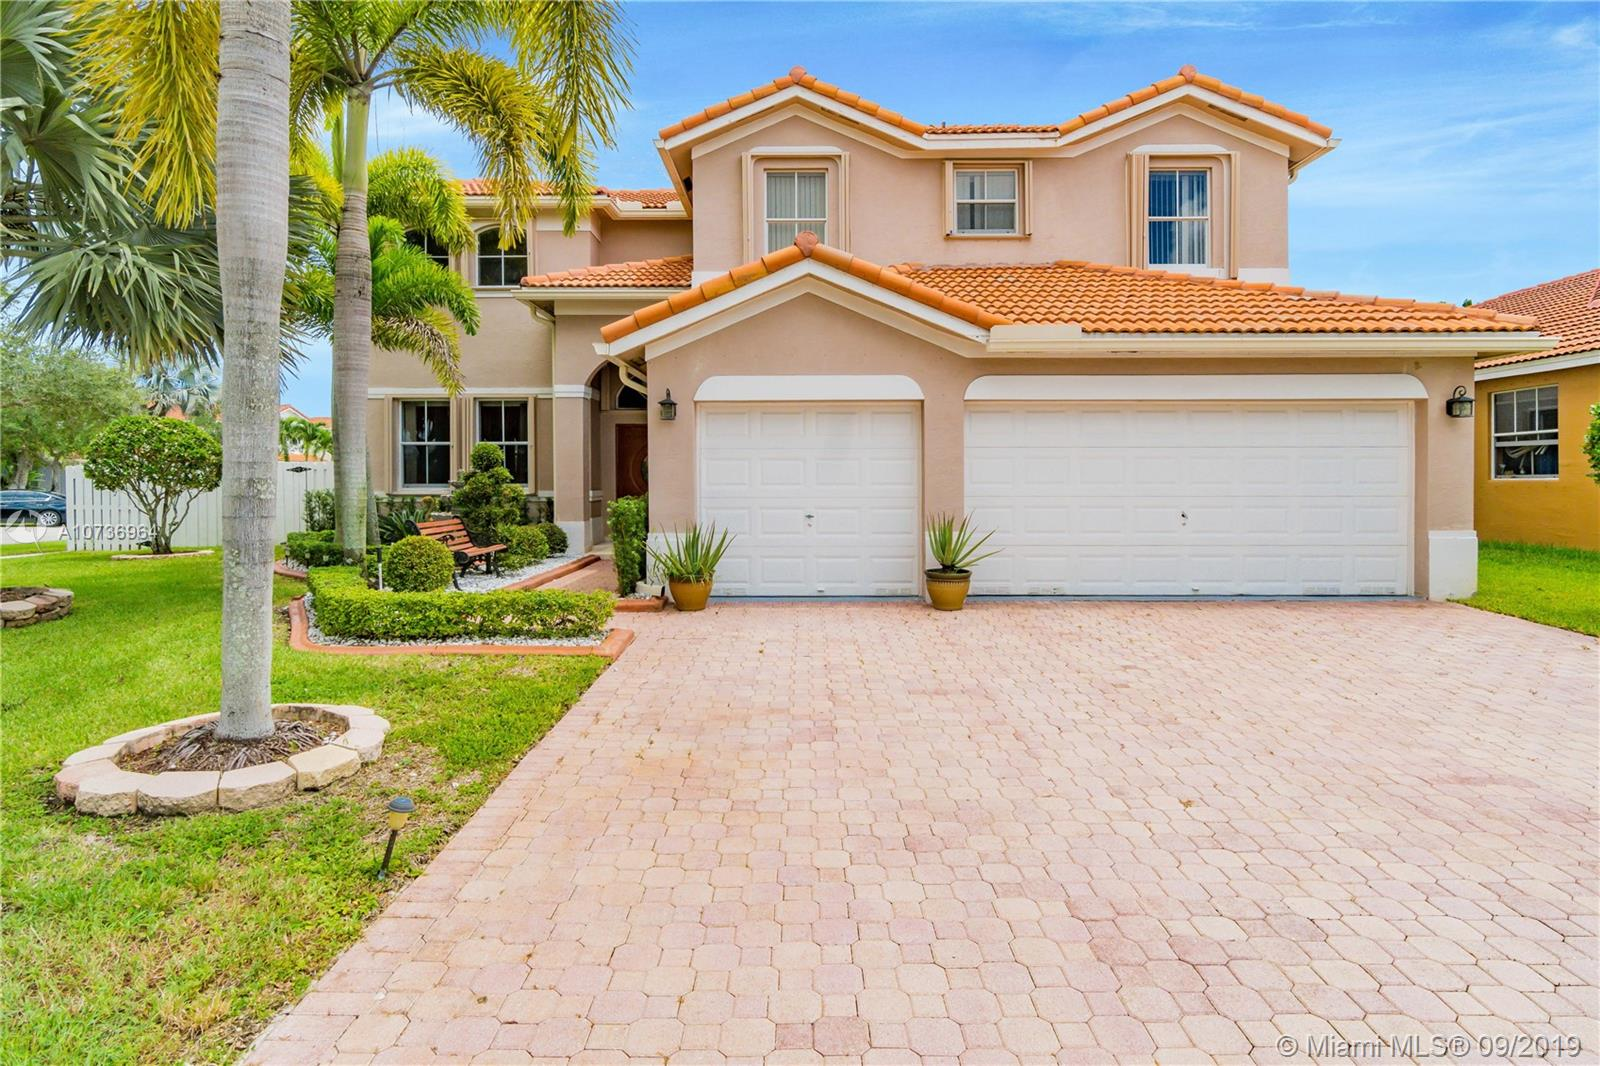 Property for sale at 1379 NW 166th Ave, Pembroke Pines FL 33028, Pembroke Pines,  Florida 33028